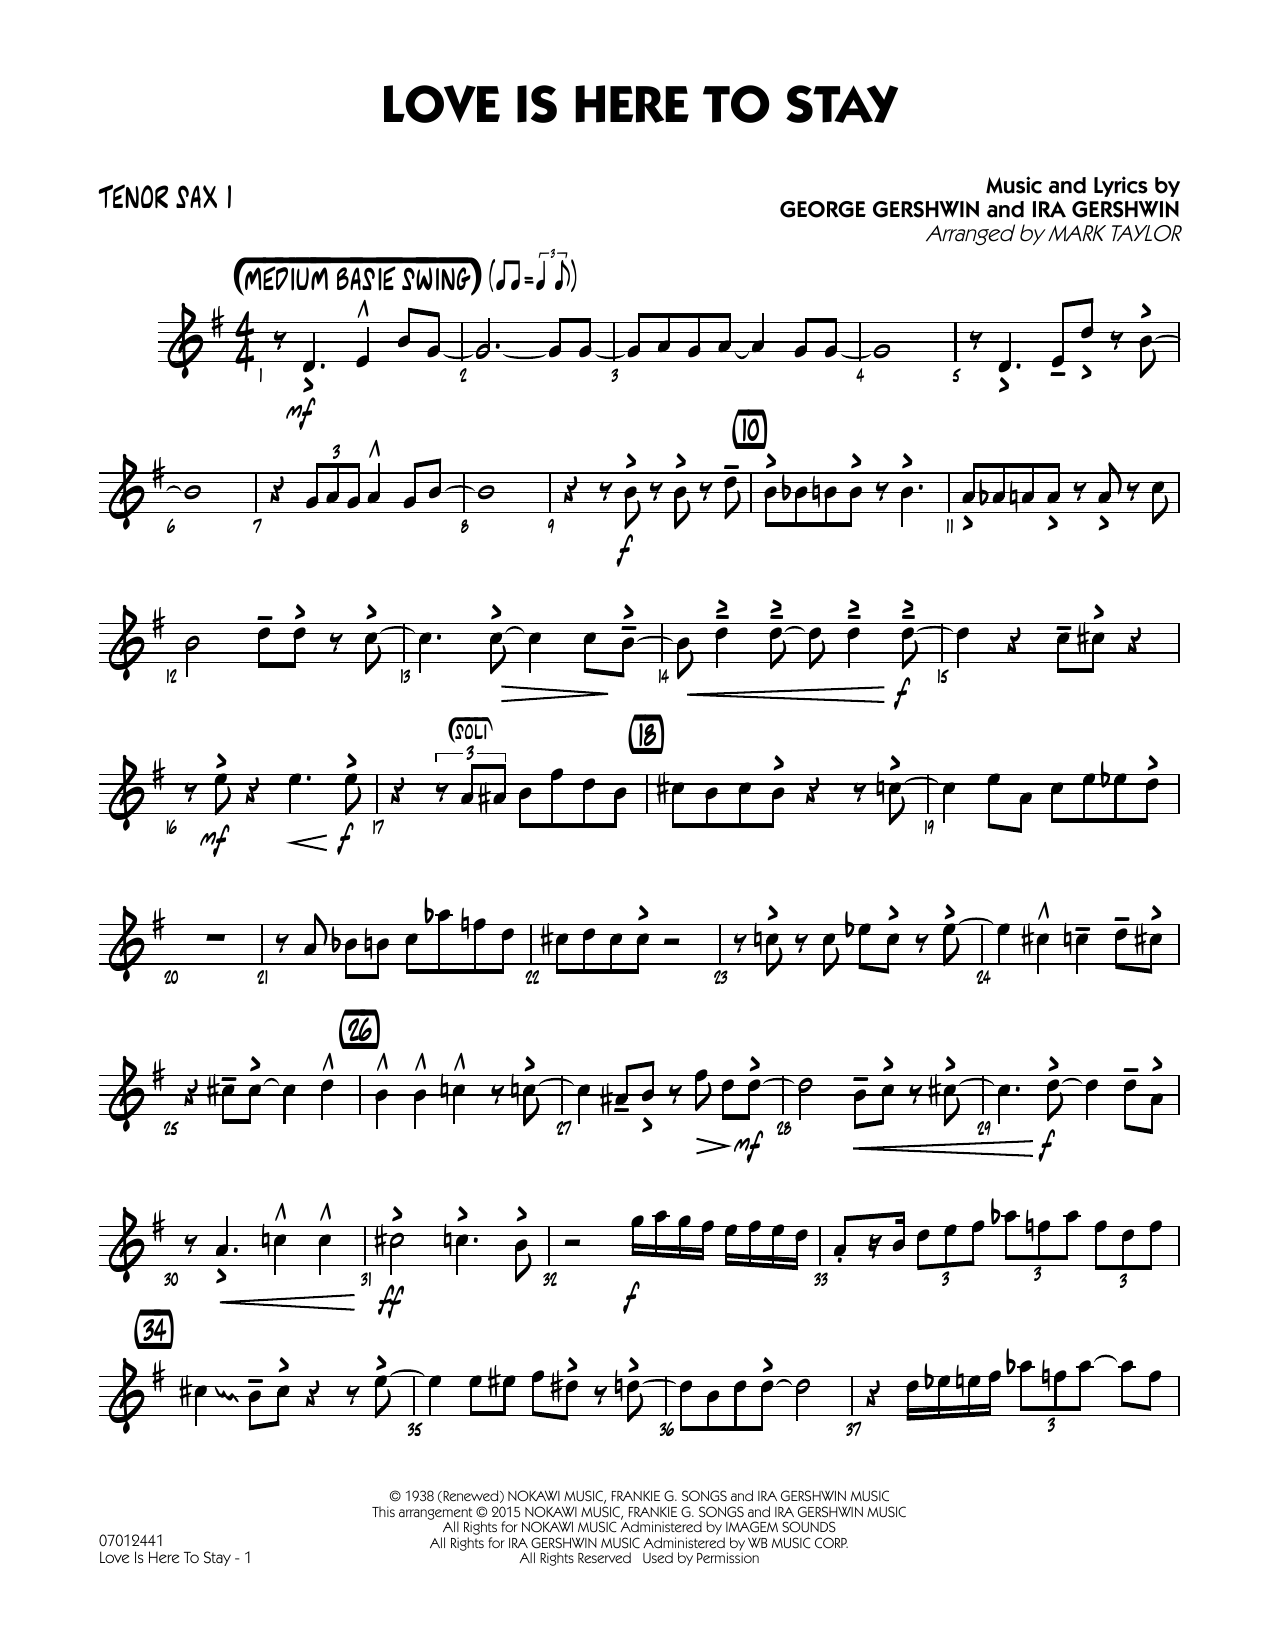 Love Is Here to Stay - Tenor Sax 1 (Jazz Ensemble)